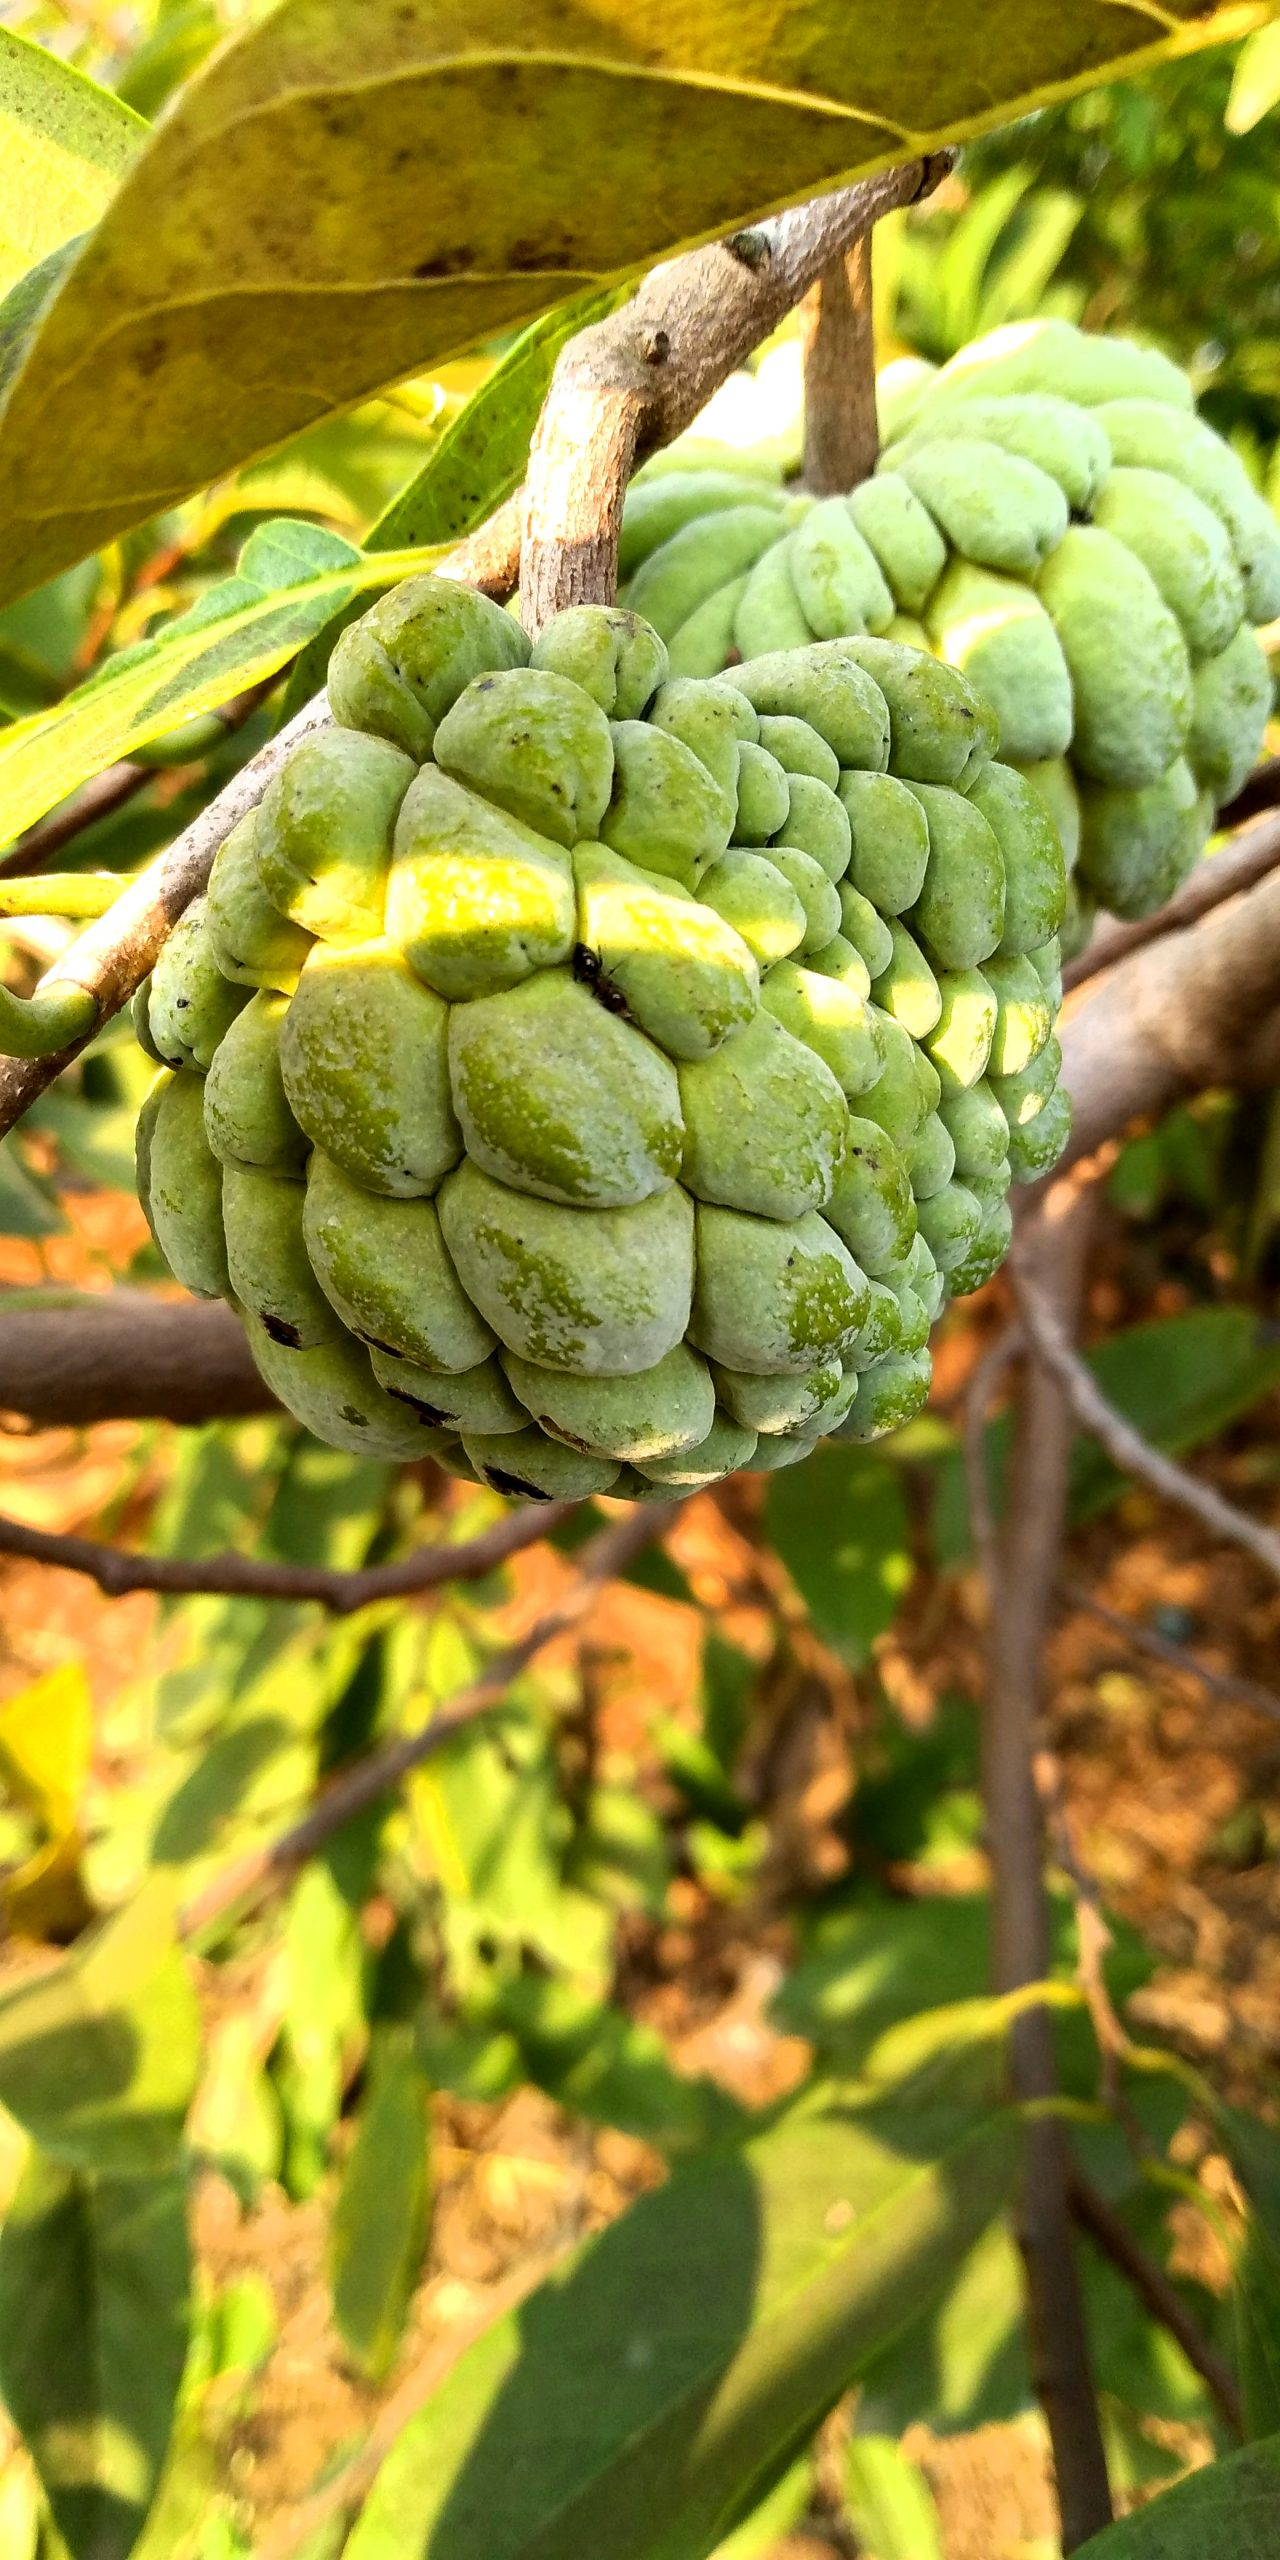 Plum sugar apple on branches